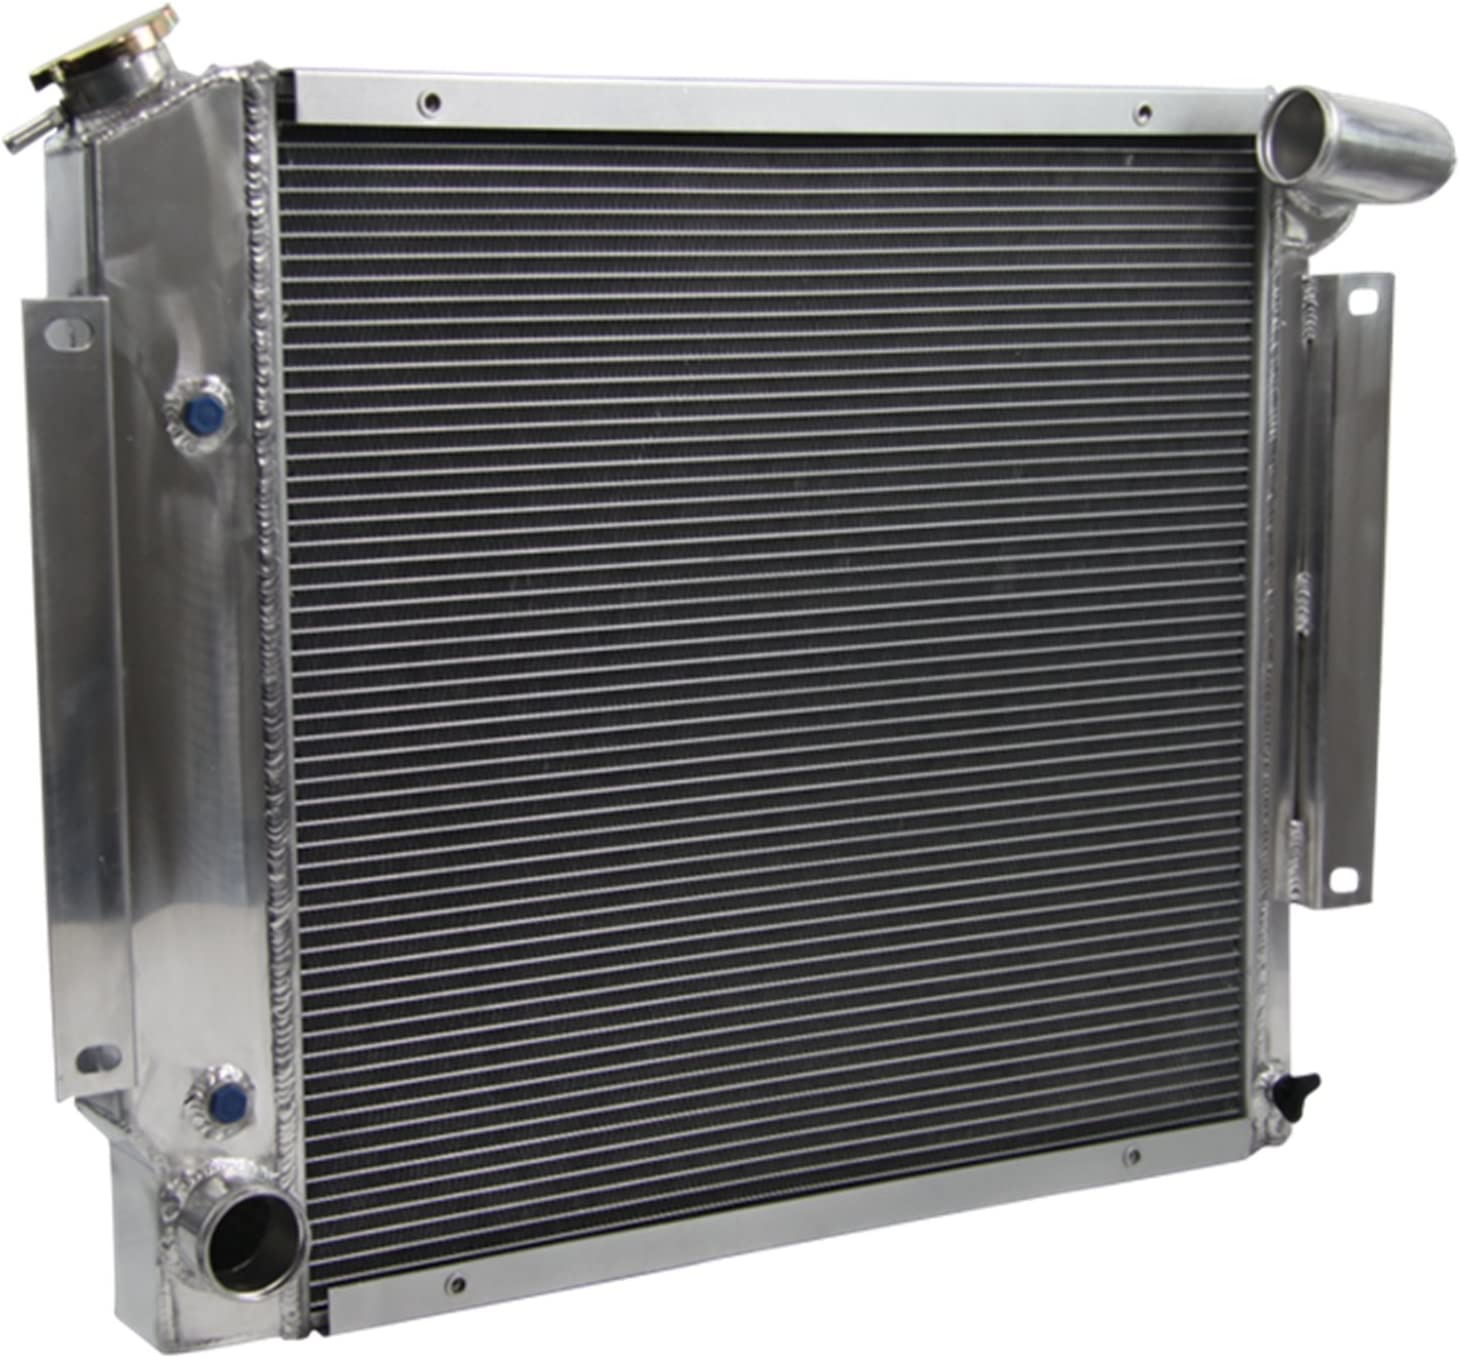 CoolingCare All Aluminum Radiator Ha for 1970-1980 Super beauty product restock quality top International Very popular